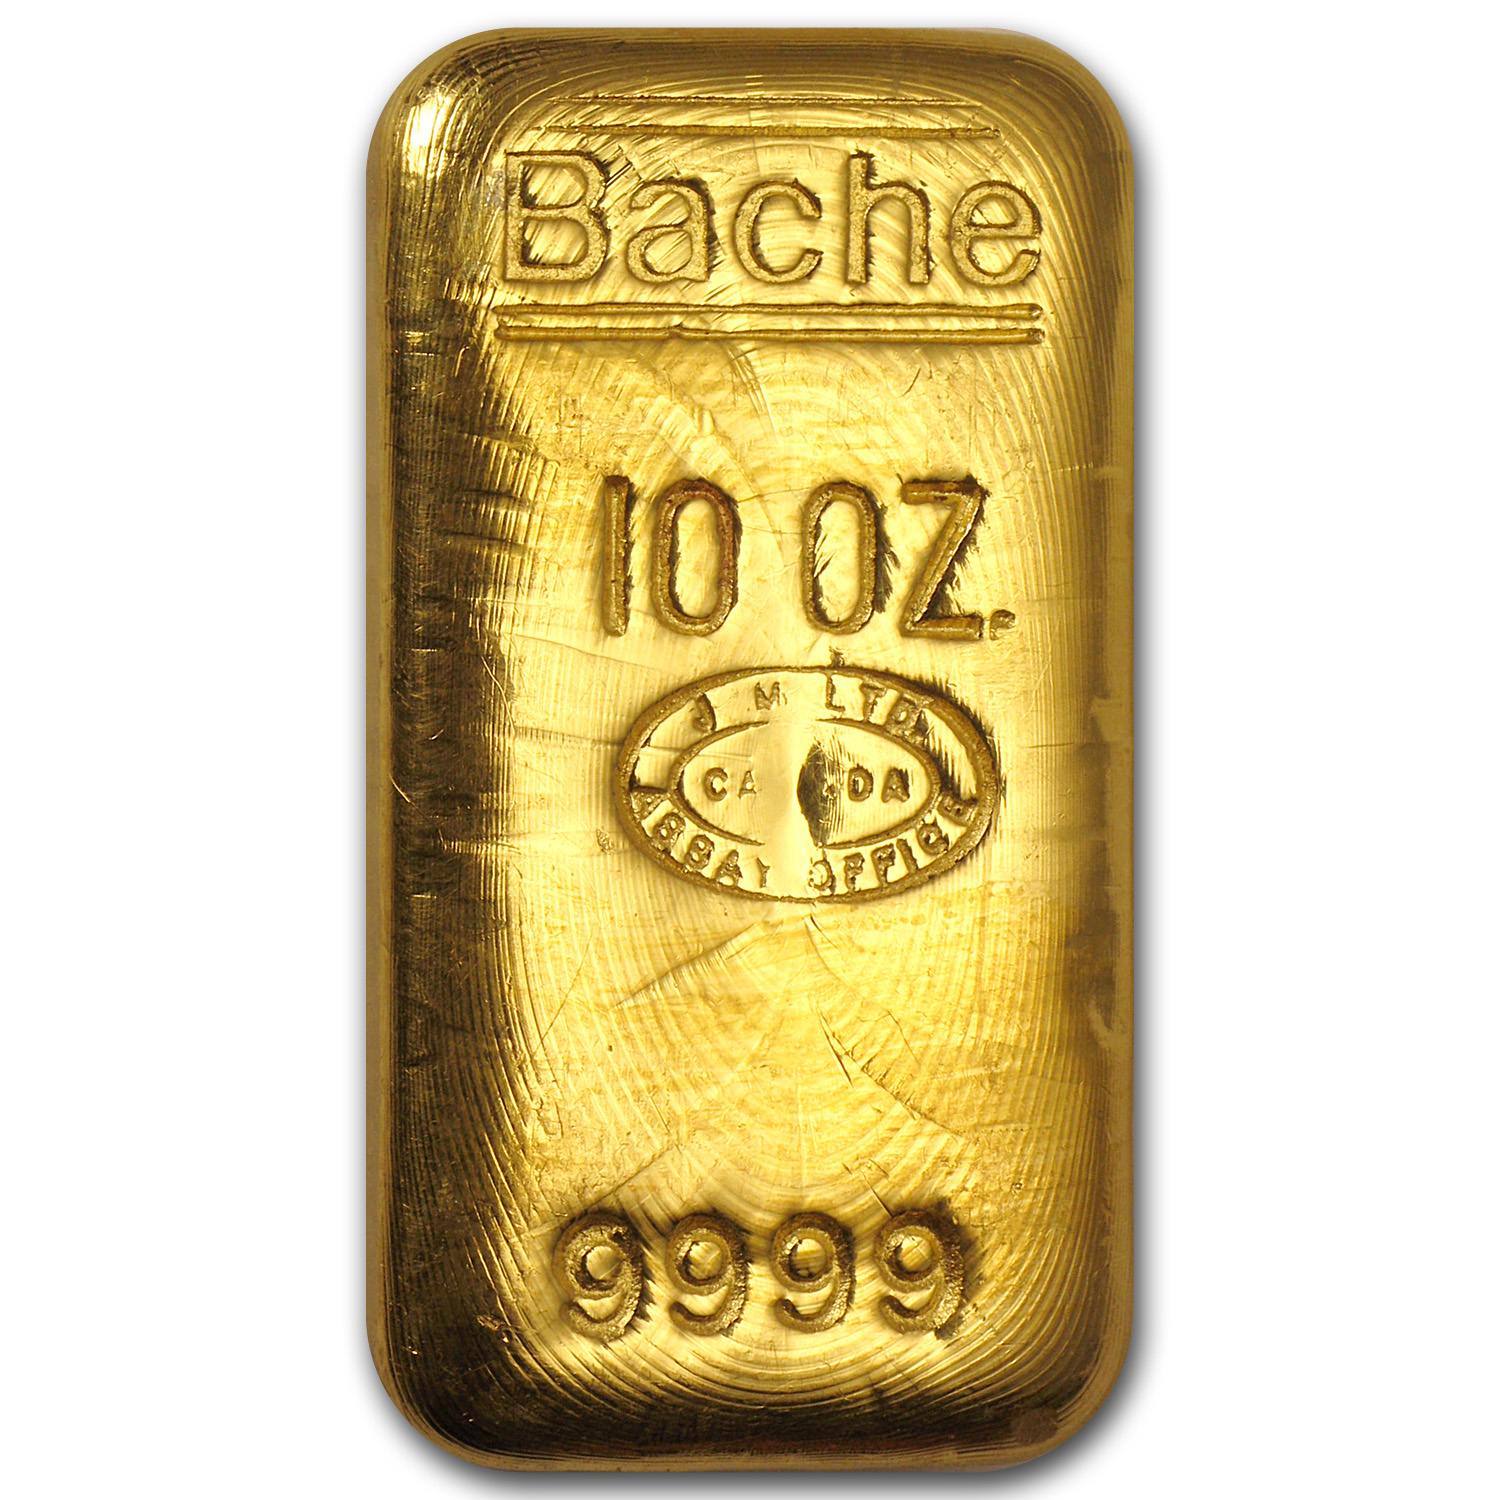 10 oz Gold Bars - Johnson Matthey (Bache)